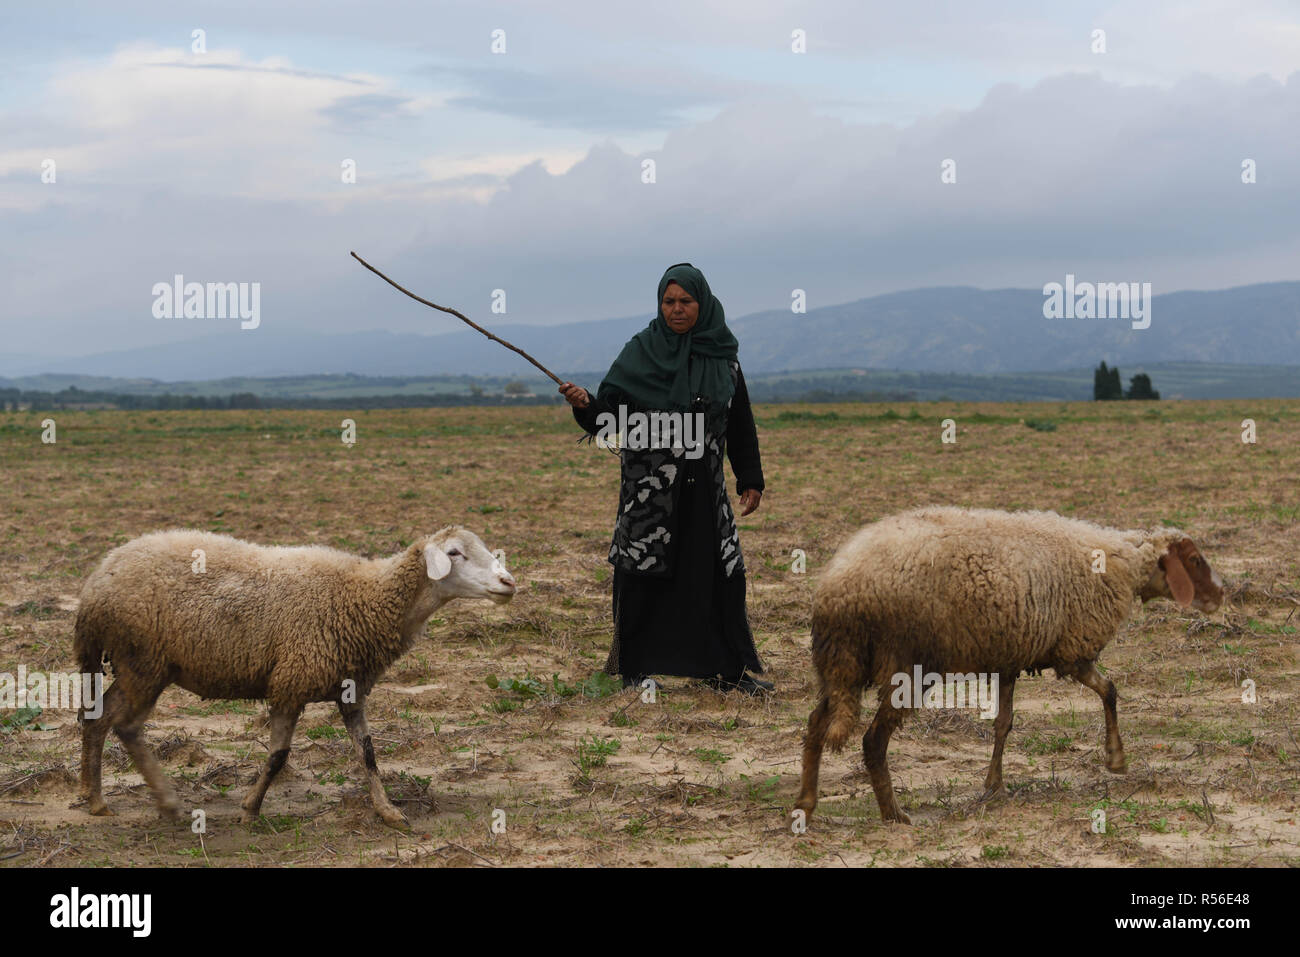 November 15, 2018 - Menzel Bouzelfa, Tunisia: Portrait of Khira Jlassi, a Tunisian grand-mother living in a rural area, as she takes sheeps to pasture. Khira Jlassi said that when her father died, she gave all her inheritance part to her brother. She now says she regrets doing so. Tunisian politicians are debating a new law to give both sexes equal inheritance rights, which would reform the current Islamic-inspired code that ensures that a man receives double a womanÕs share of an inheritance. Portrait de Khira Jlassi, une bergere tunisienne qui a donne toutes ses parts d'heritage a son frere  - Stock Image